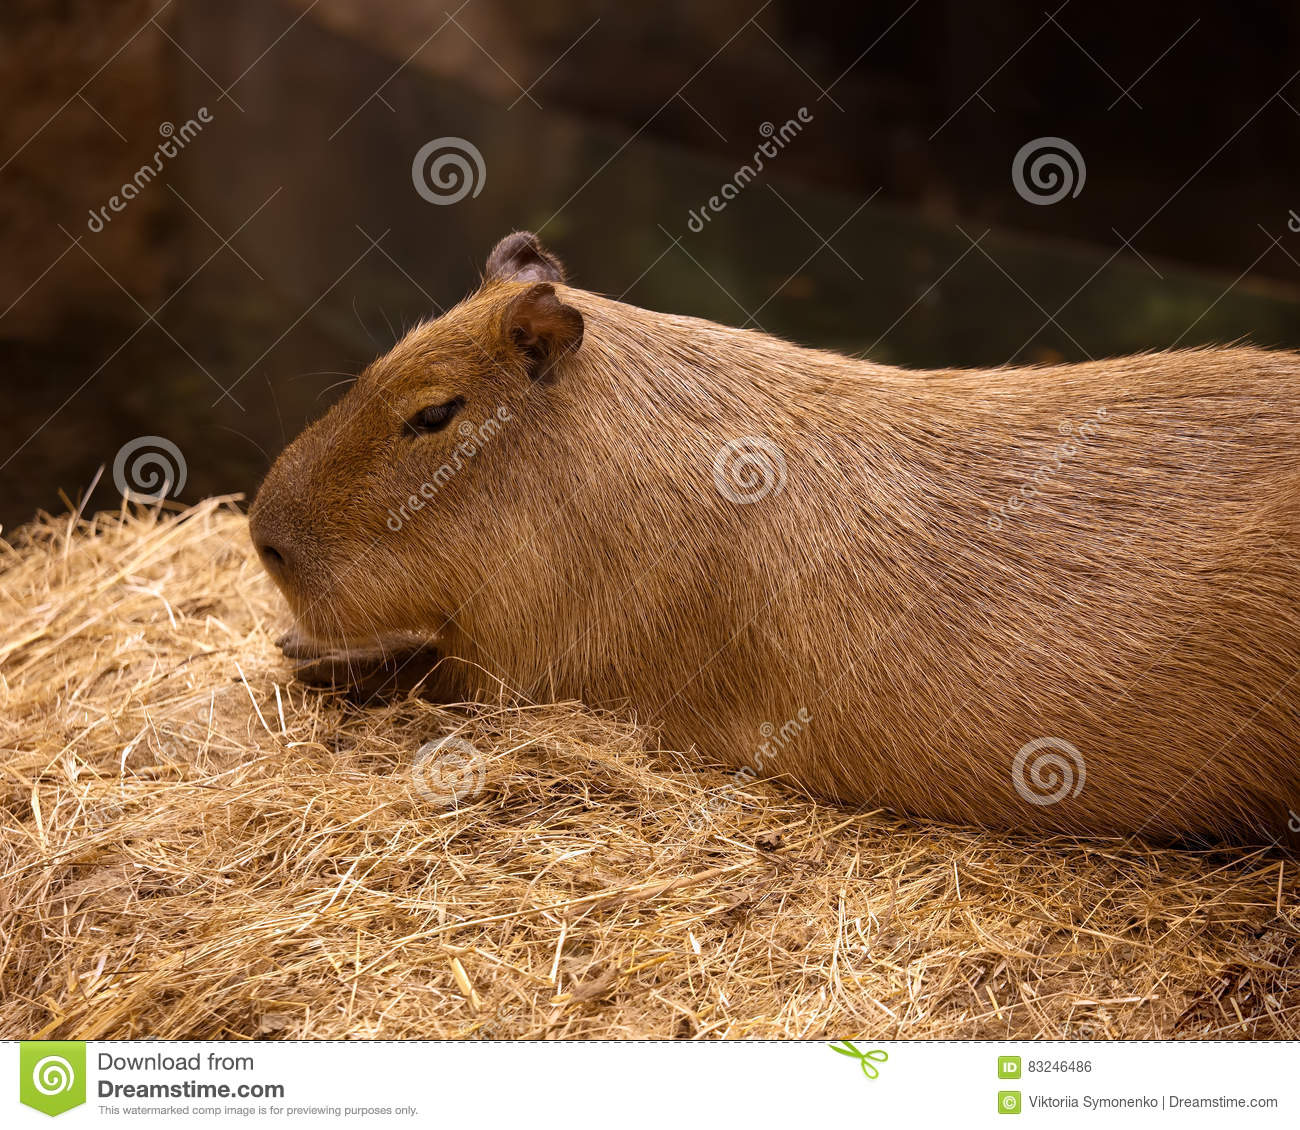 Elegant And Beautiful Capybara Close Up In The Zoo  Stock Photo     Elegant and beautiful capybara close up in the zoo